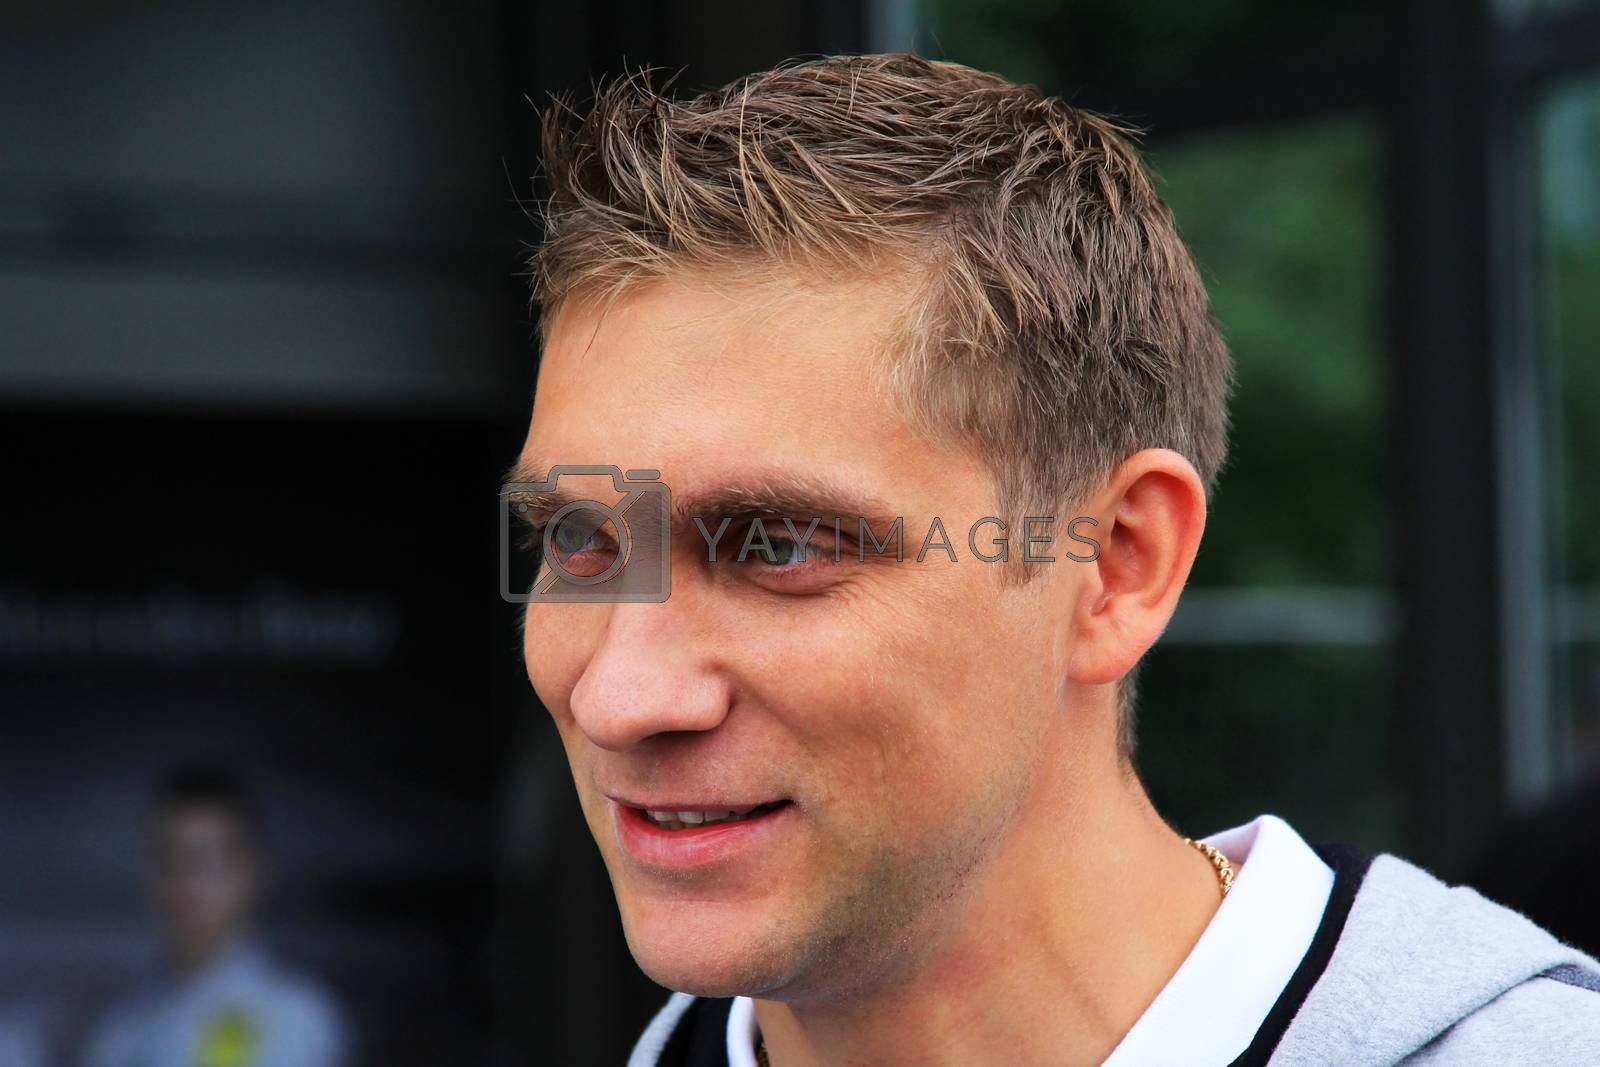 """Moscow, Russia - 21 July, 2013: Russia racing driver, pilot of Renault F1 Team Vitaly Petrov in a grand car show called """"Moscow City Racing"""" in the center of Moscow, Russia."""